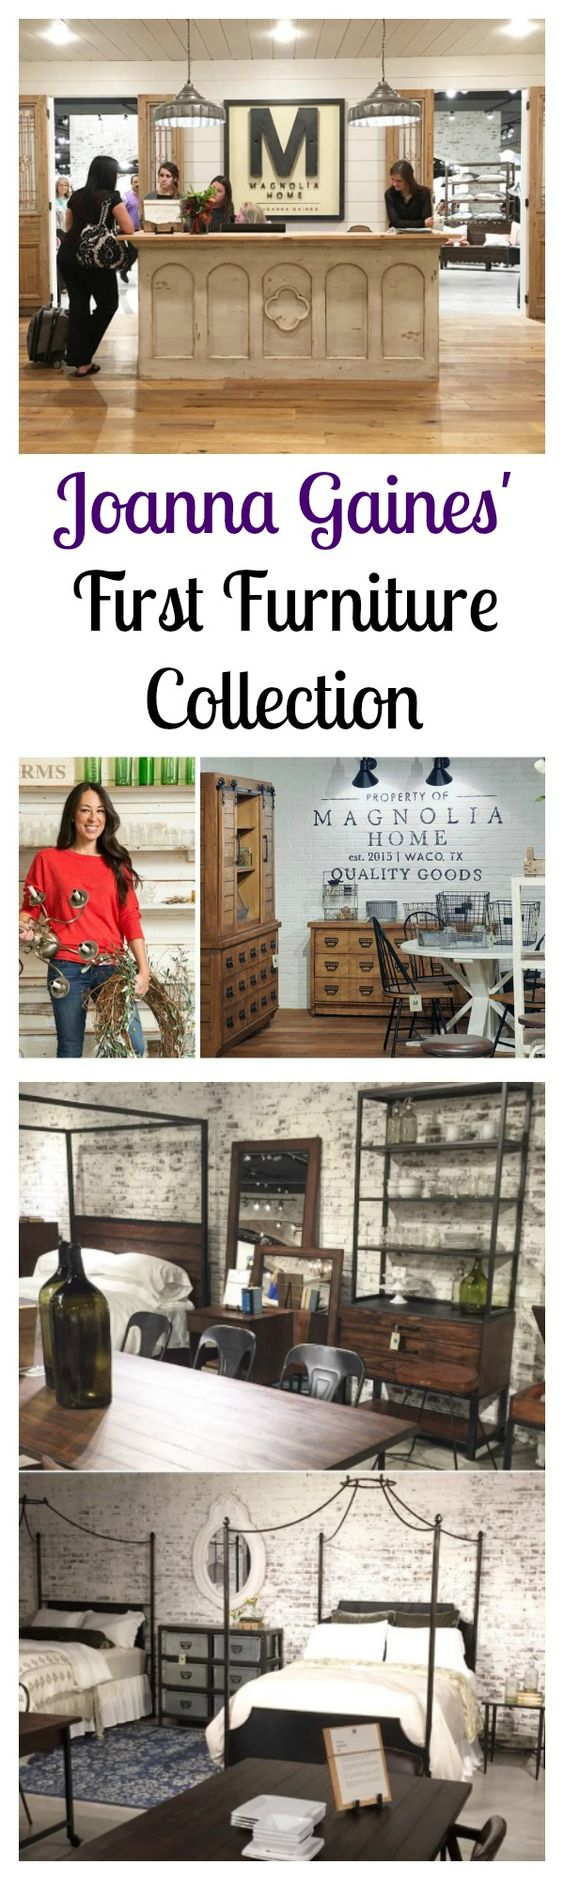 Joanna gaines 39 first home furniture collection is more for Ever design furniture